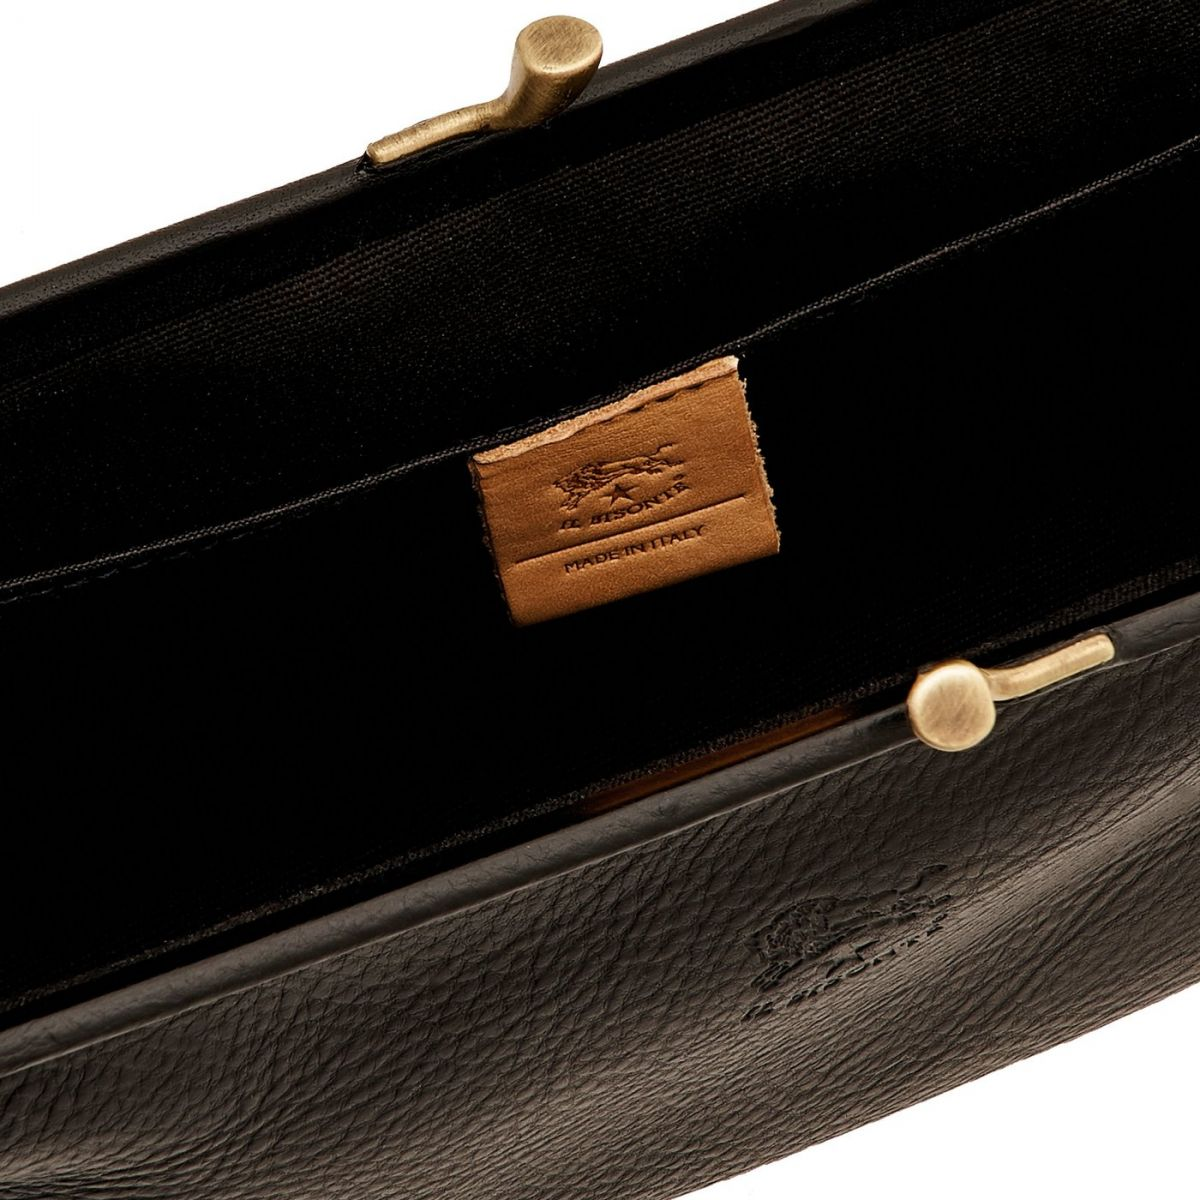 Women's Clutch Bag in Cowhide Double Leather BCL006 color Black | Details